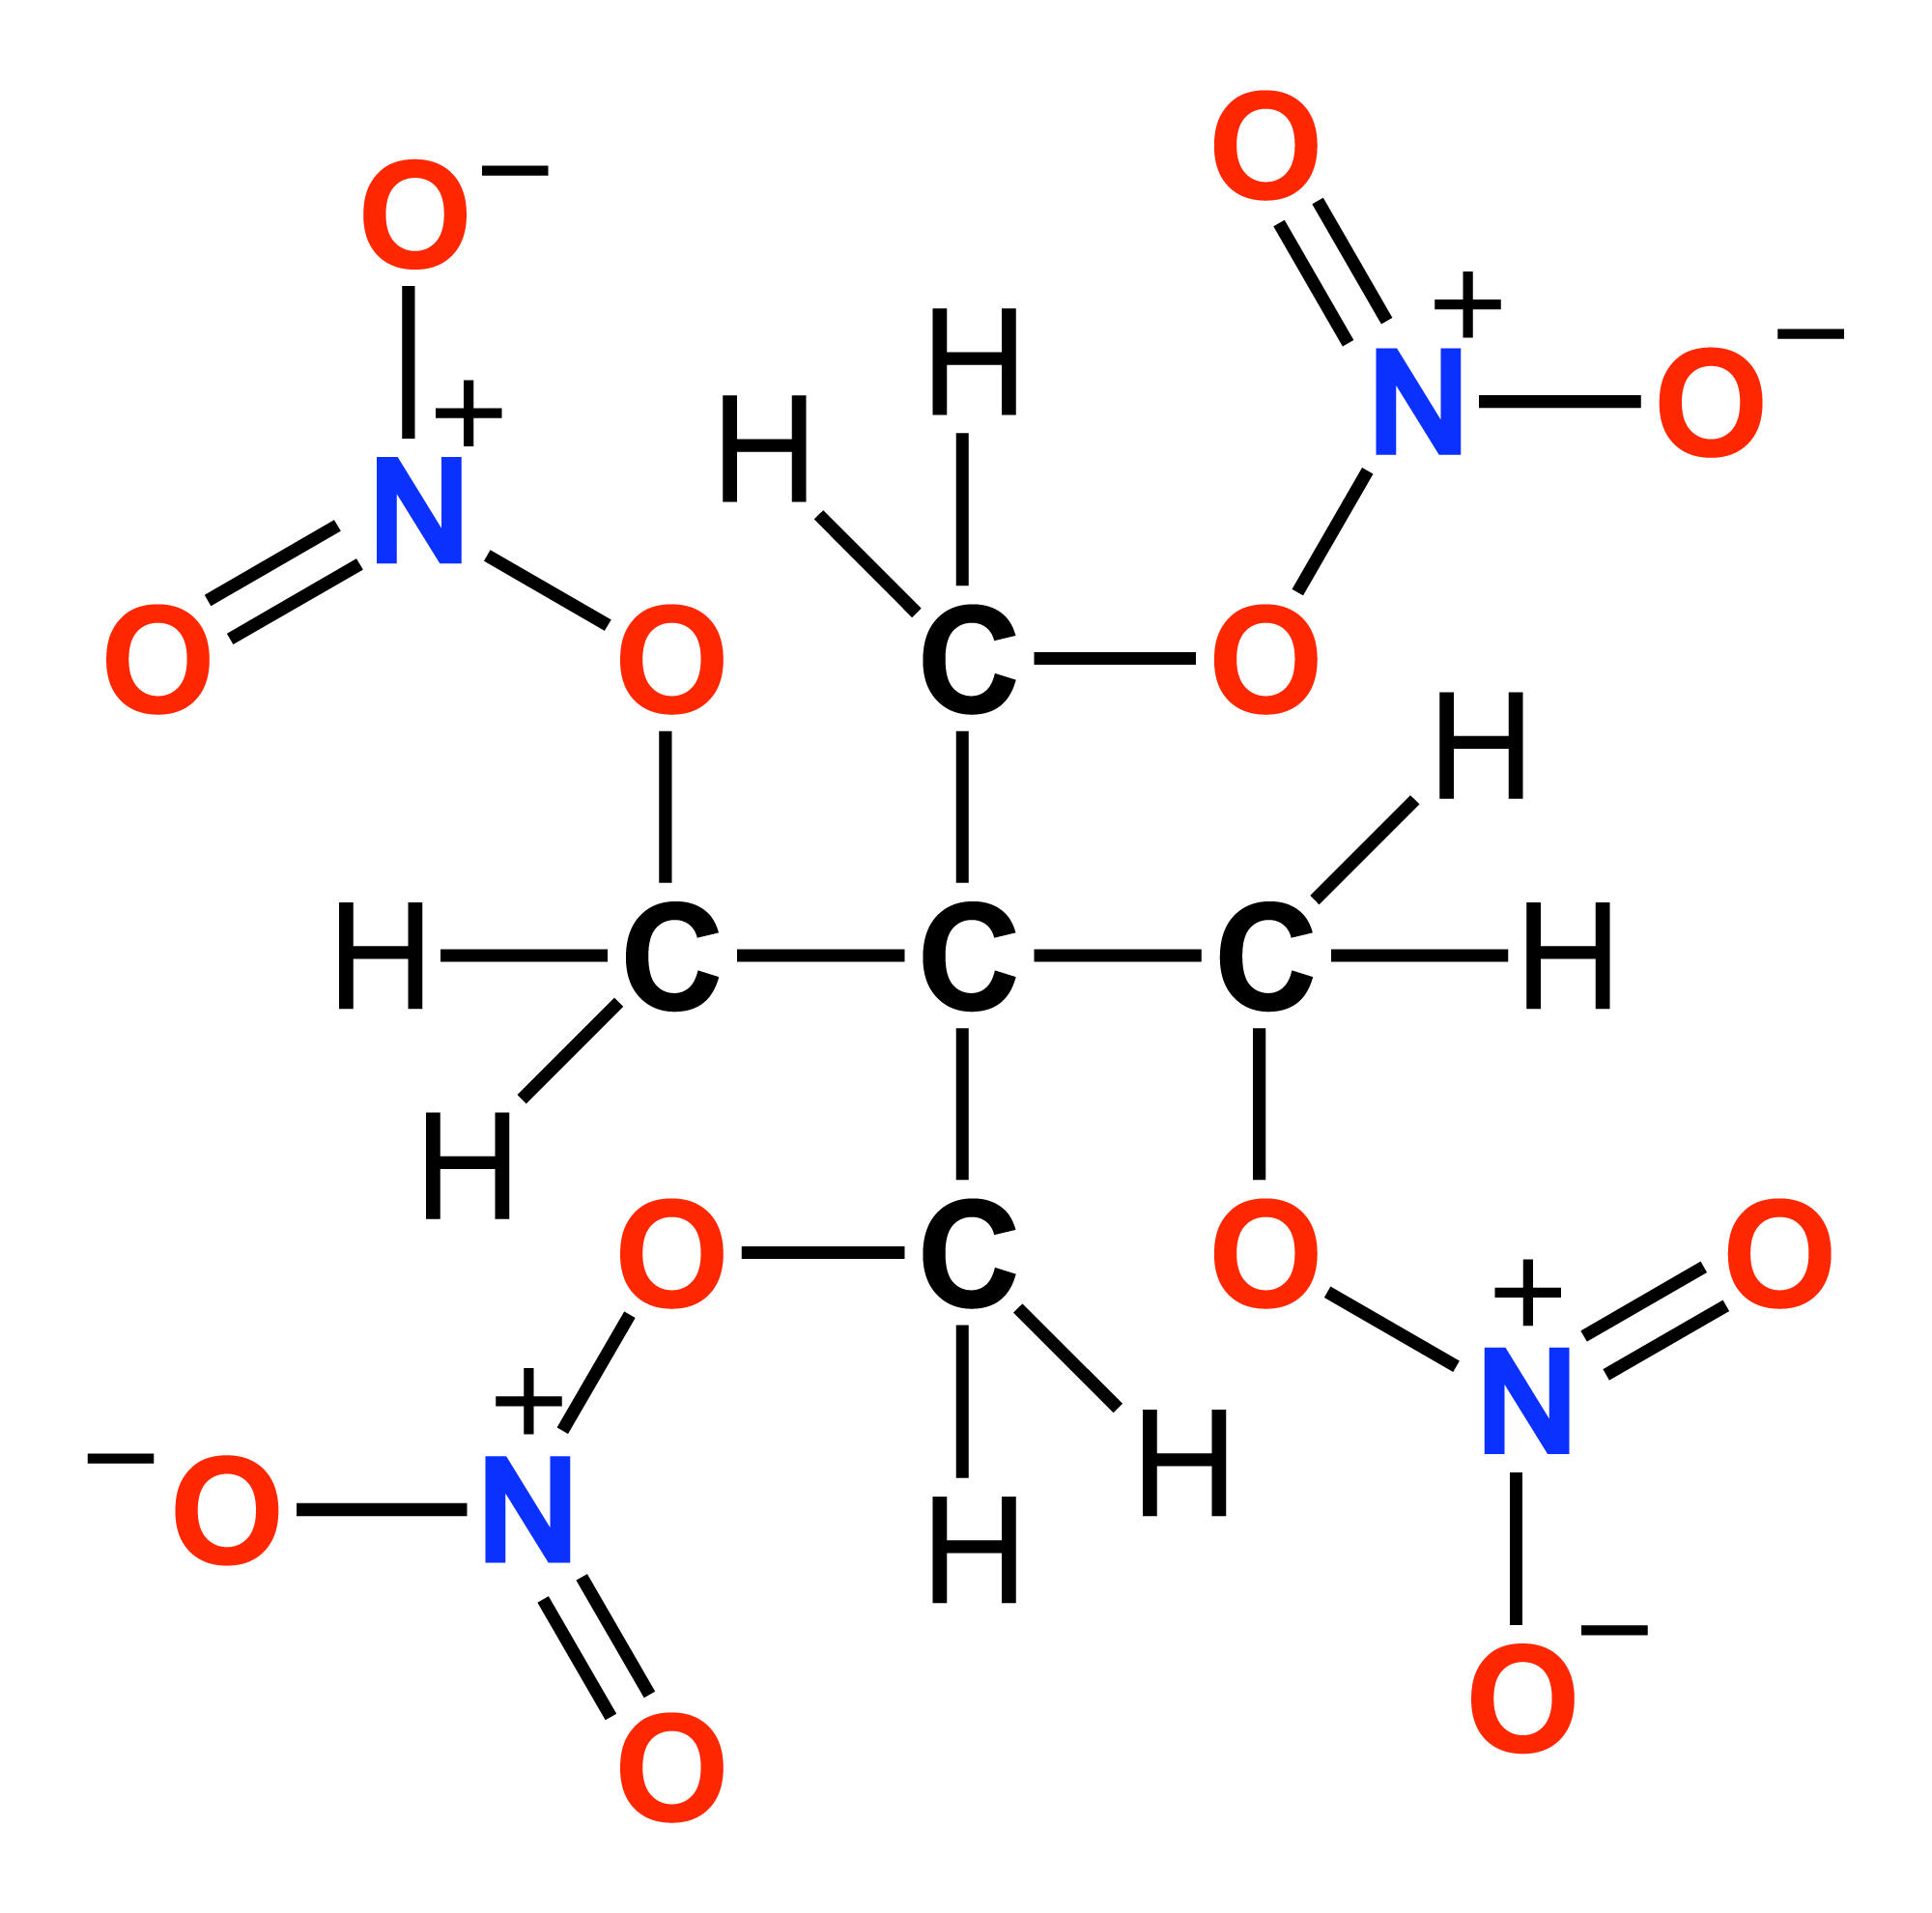 Structural Formula For Oxygen File:petn-structural-formula